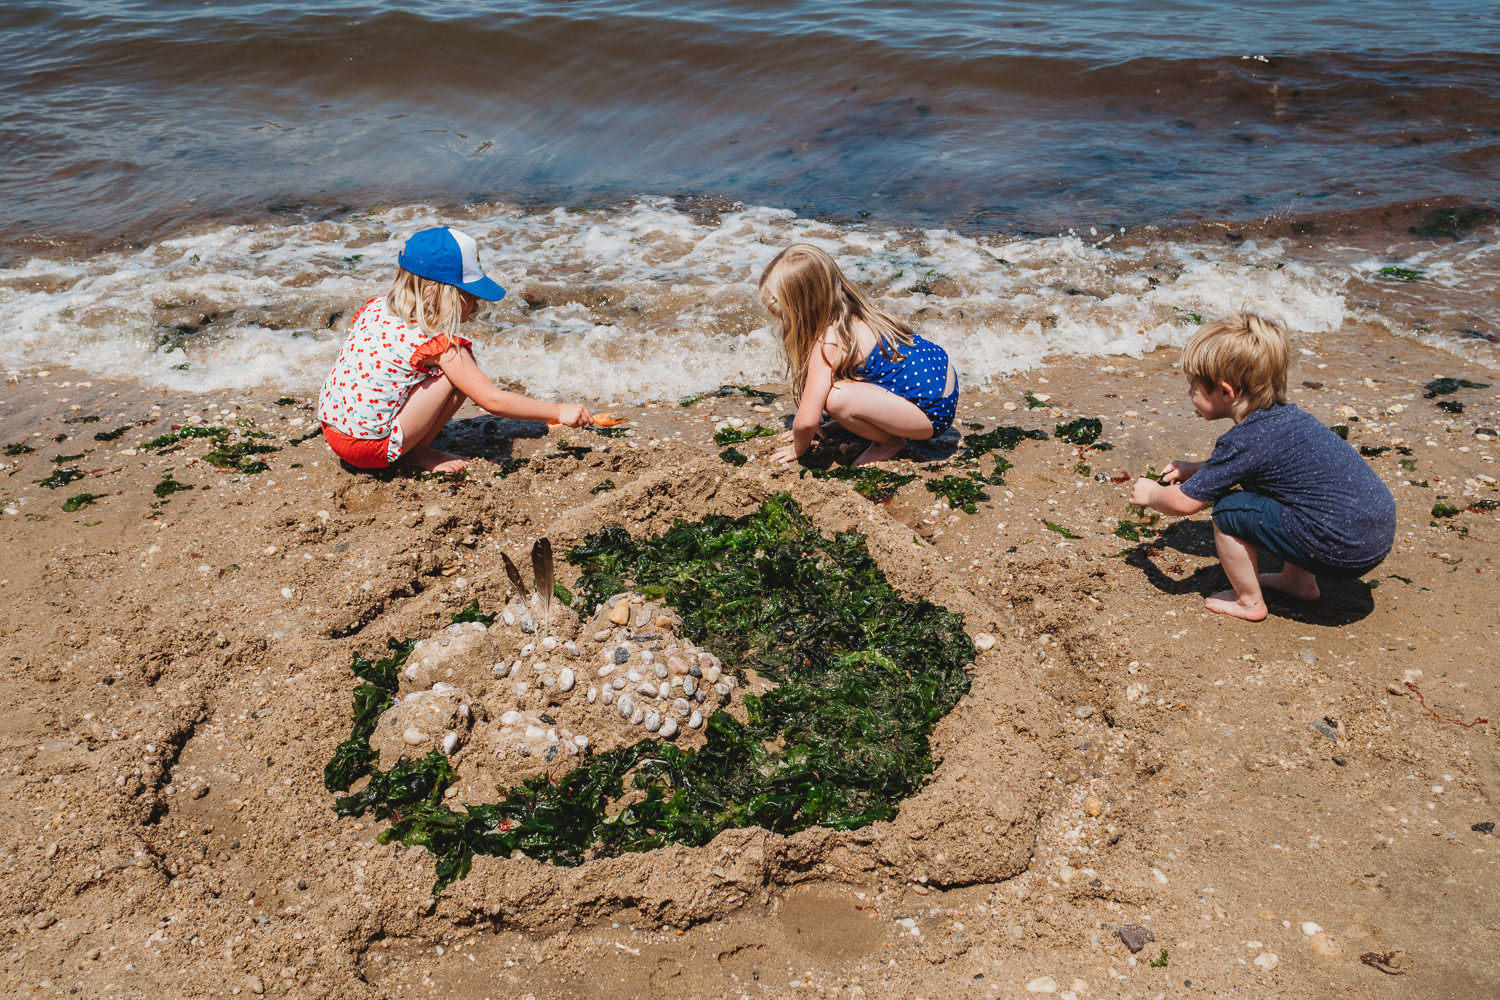 Three children build a sandcastle with seaweed and shells at Sands Point.